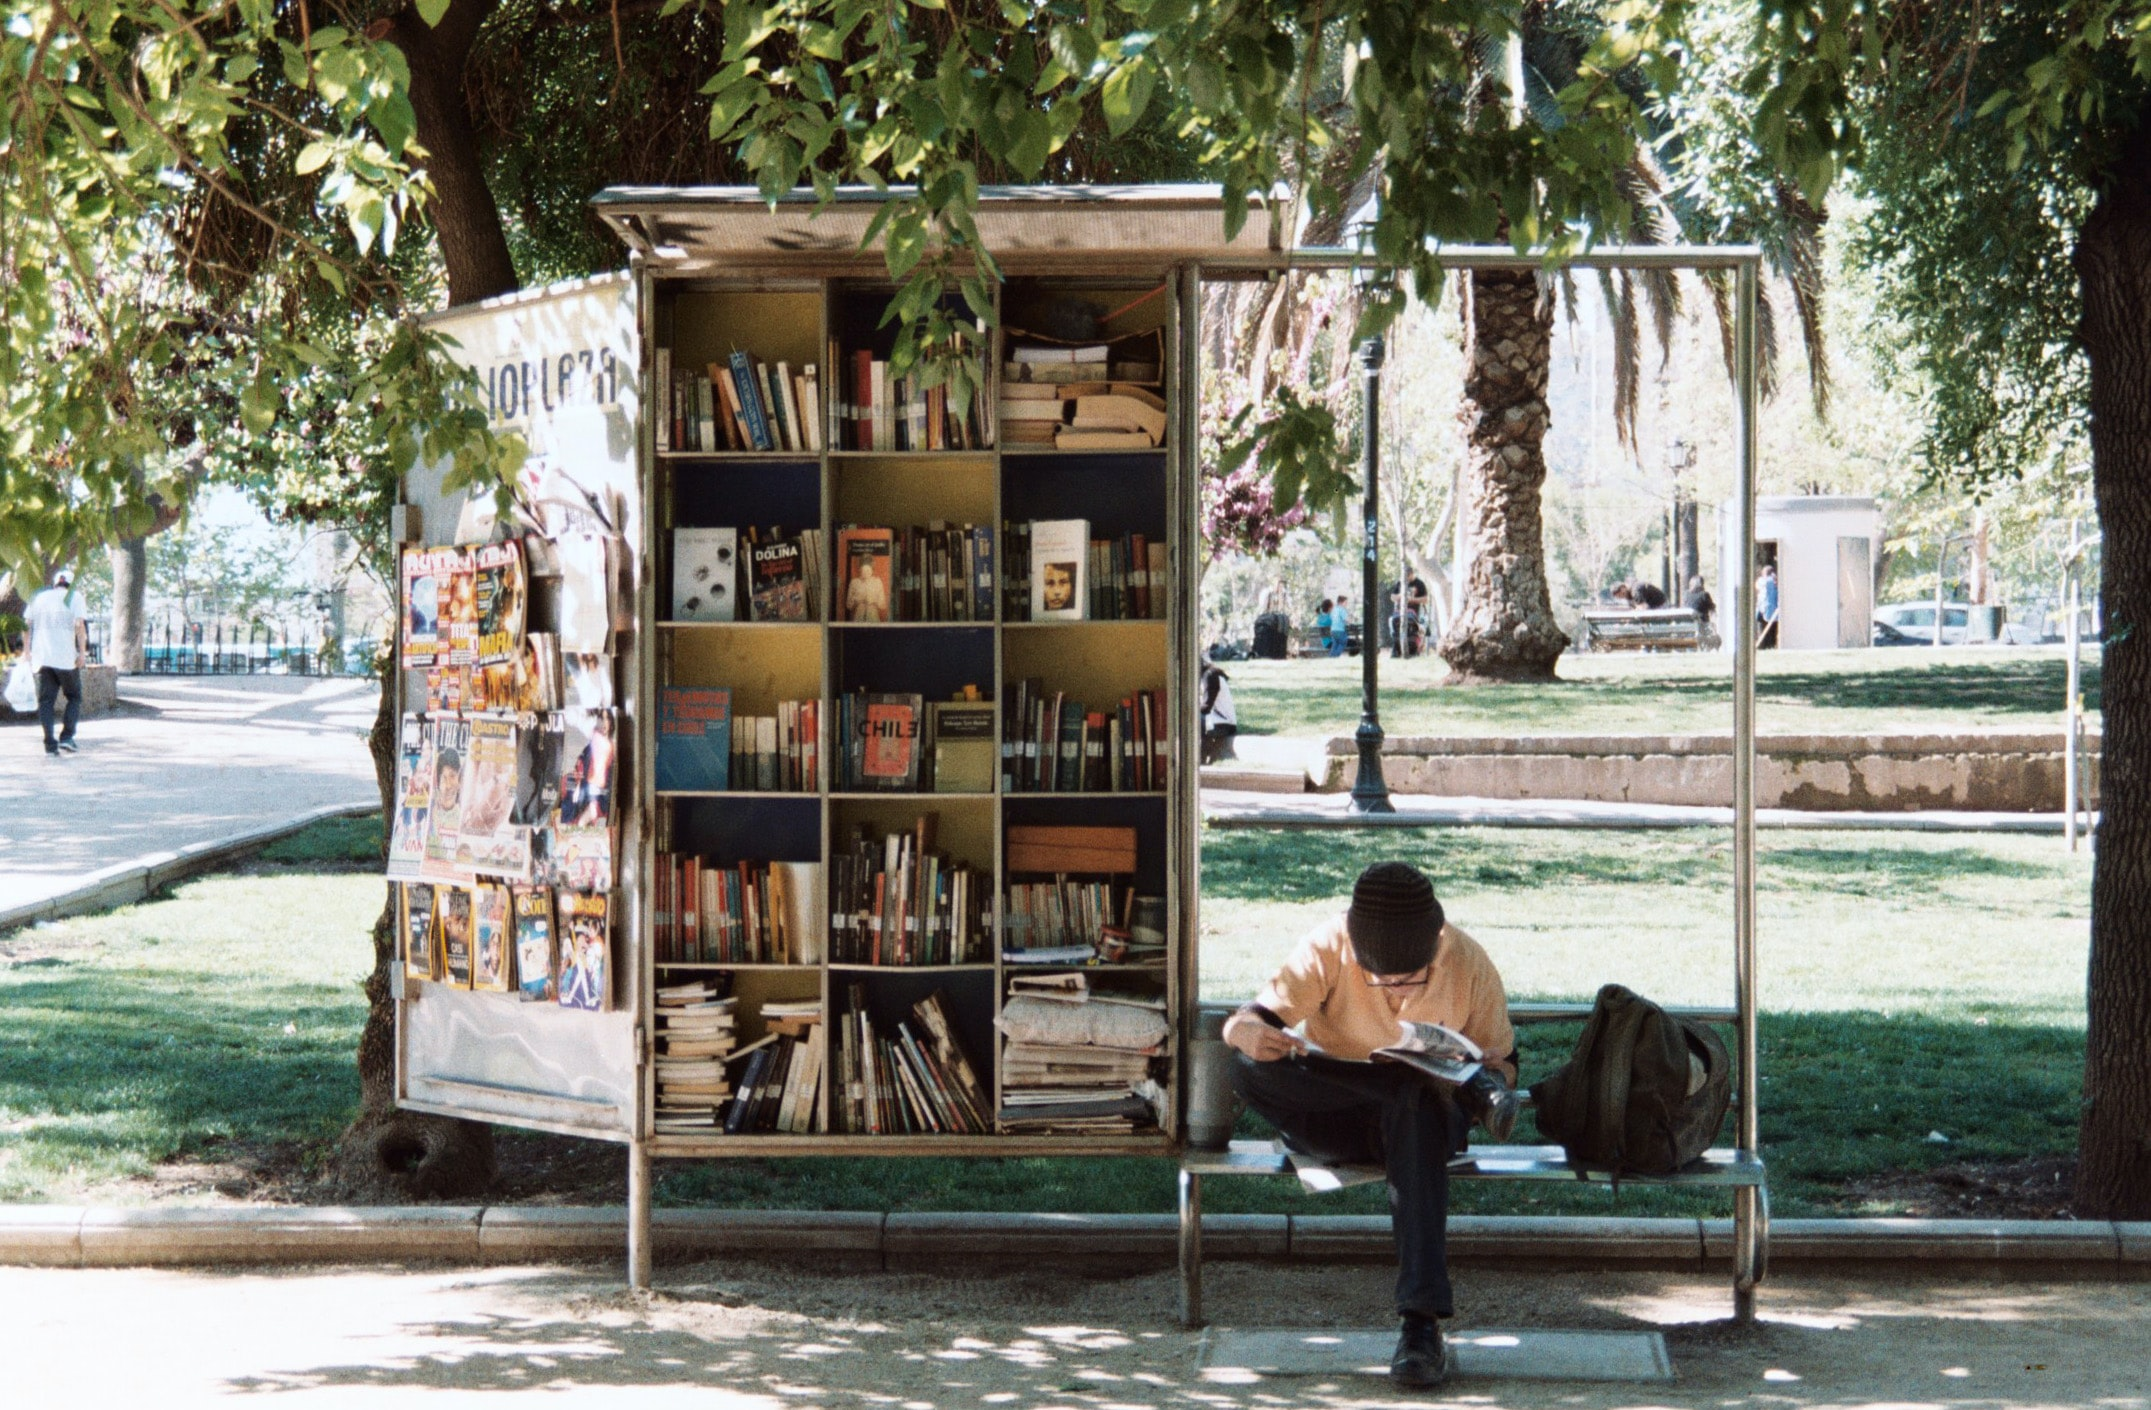 A man sitting on a bench next to a bookshelf in a park